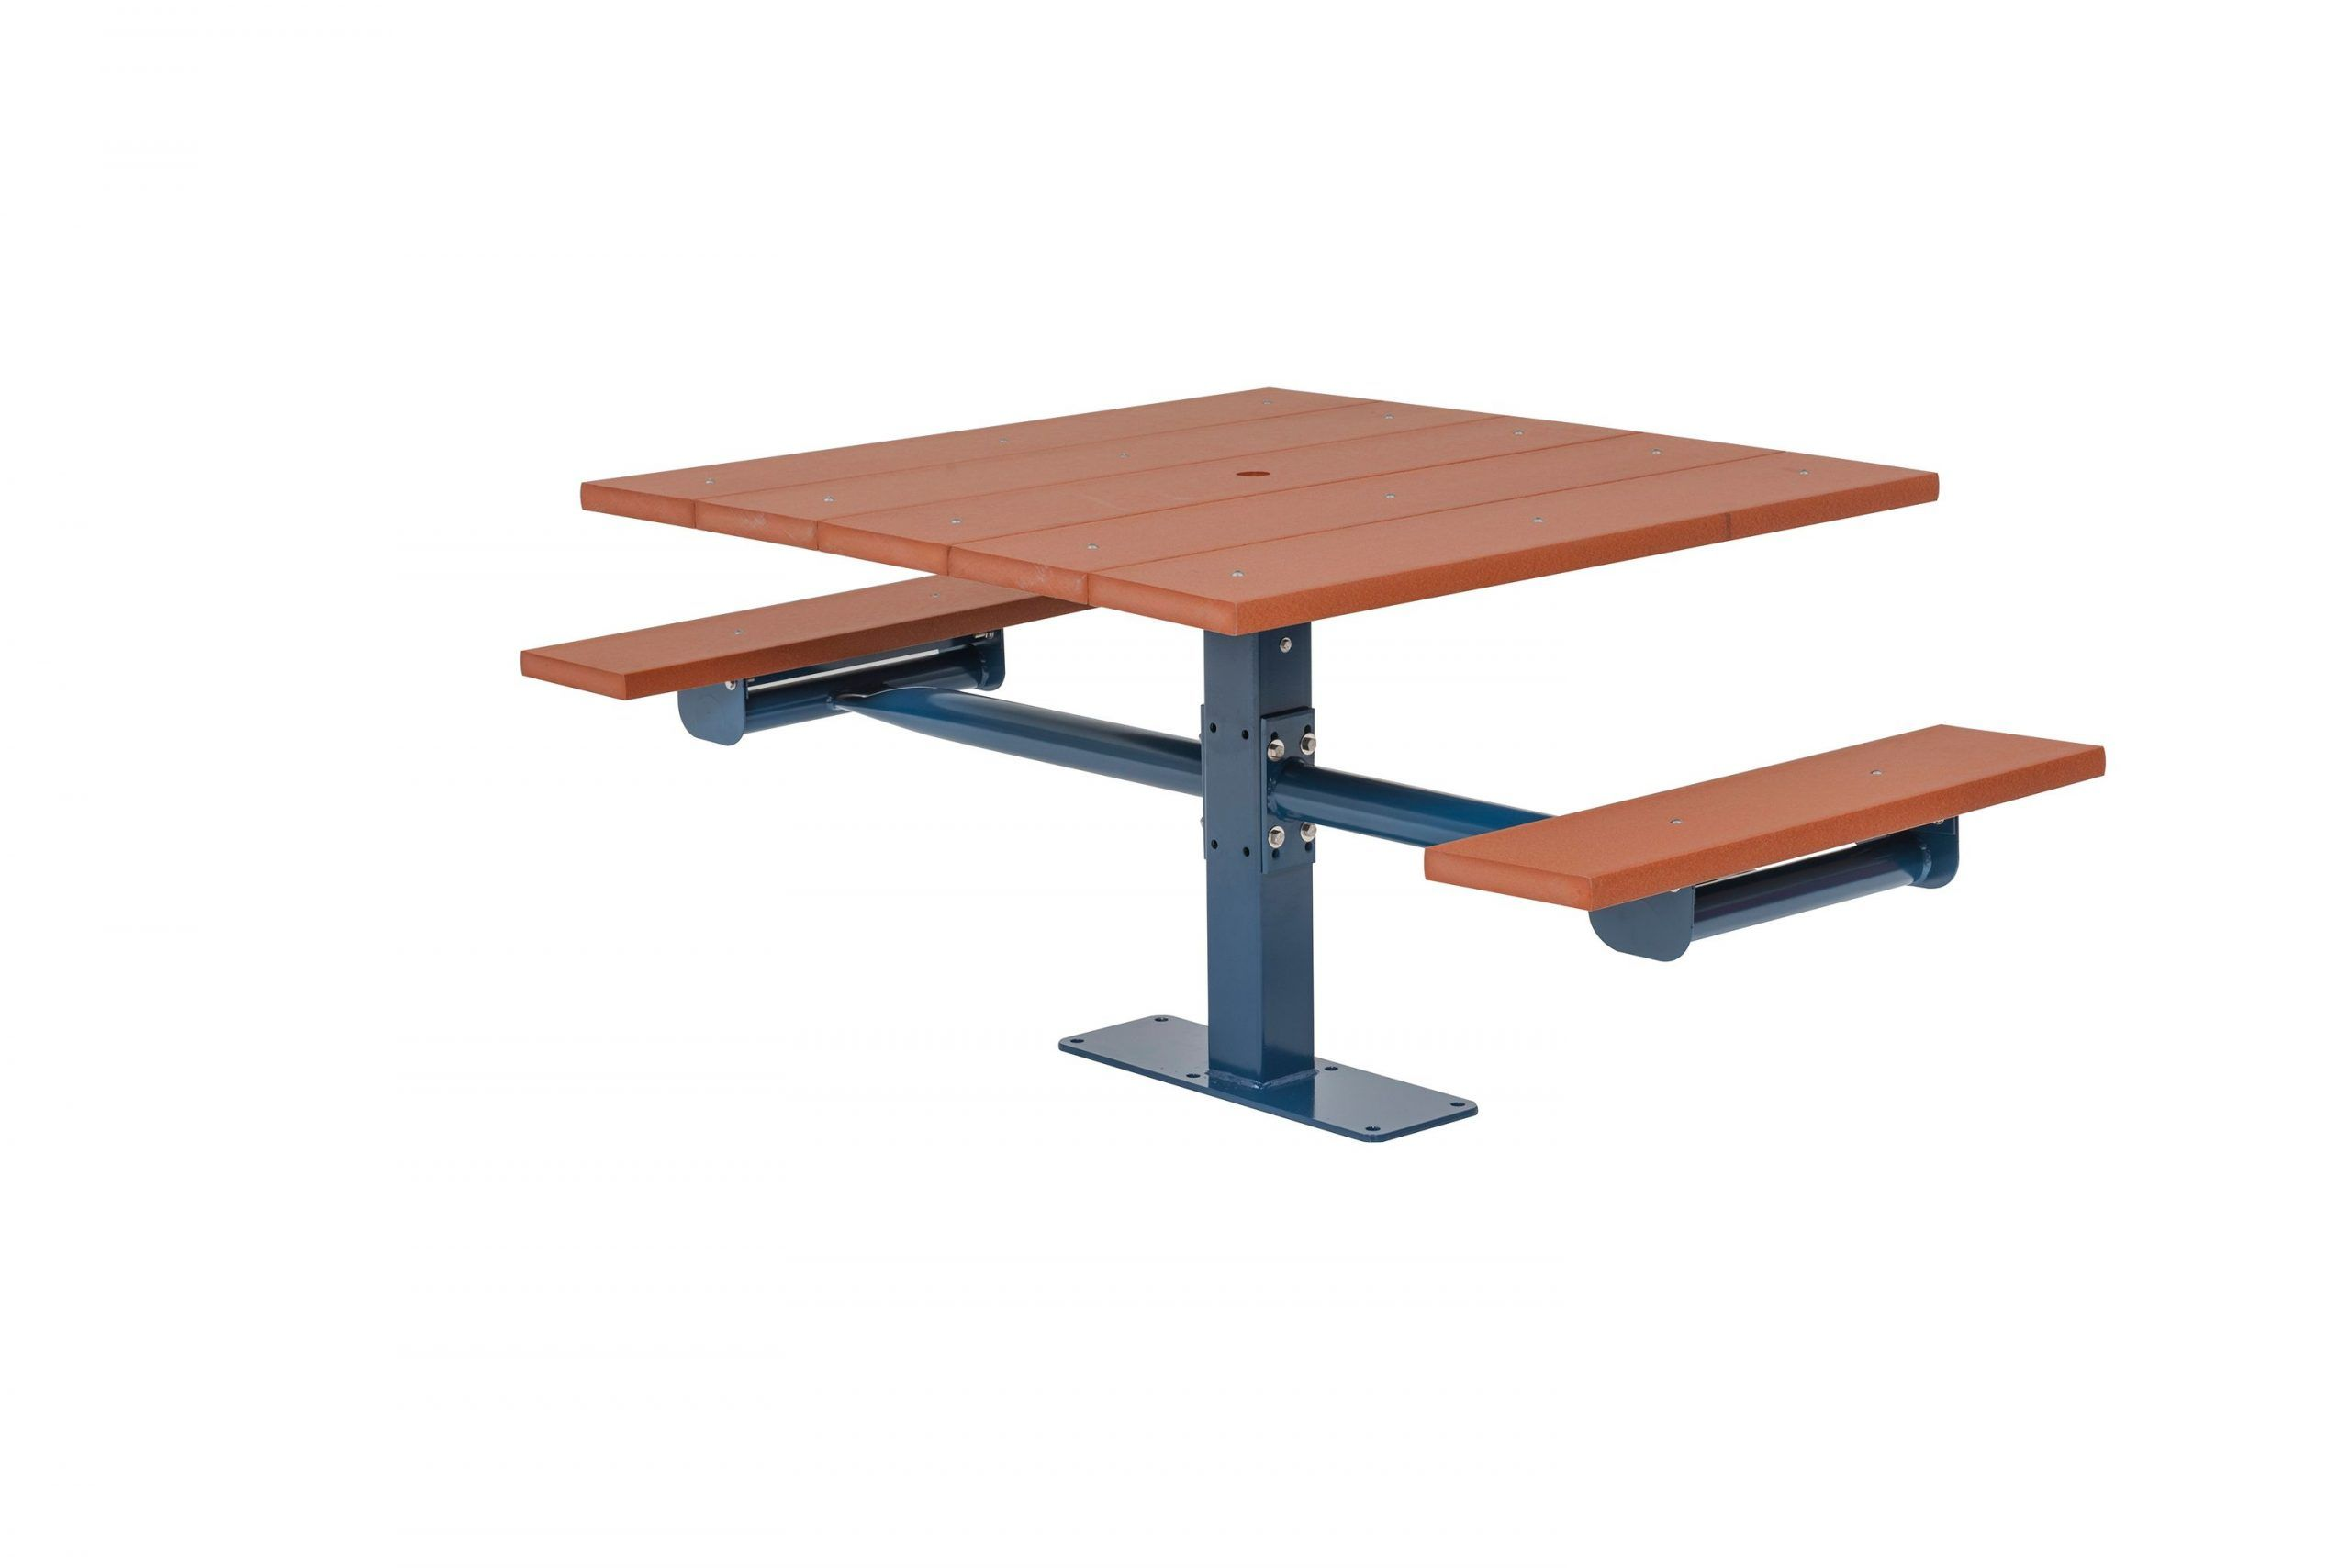 Square Recycled Plastic Table with Two Seats - Surface Mount (MRGV245G)